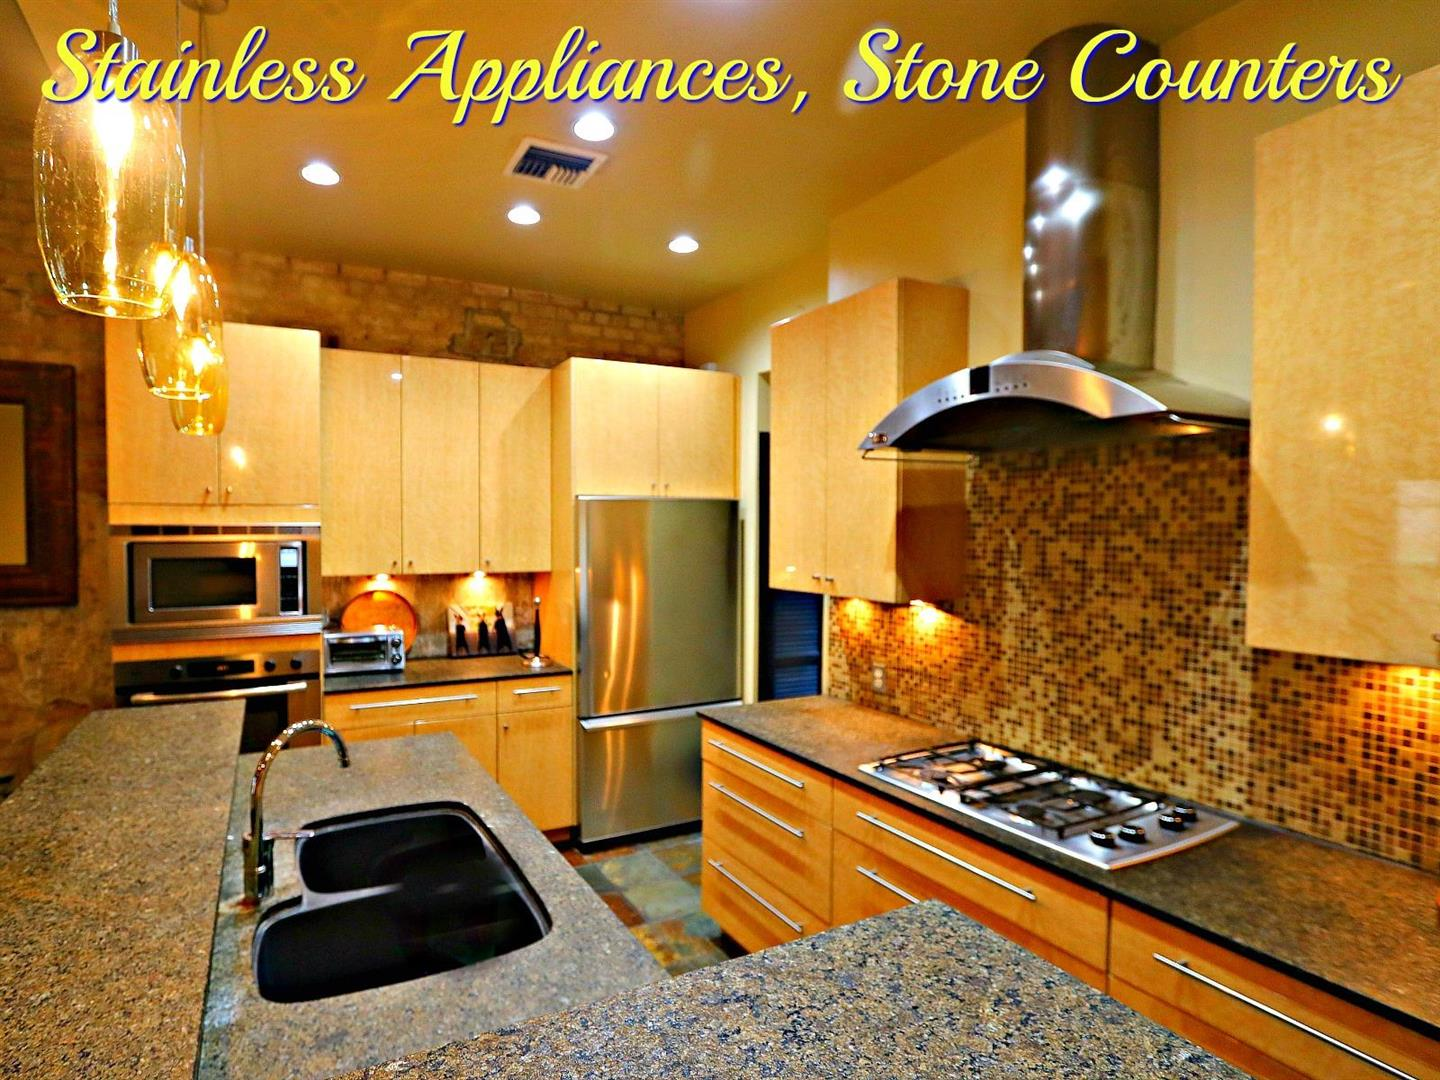 342S.DiamondSt.CondoKitchenSSappliances.jpg